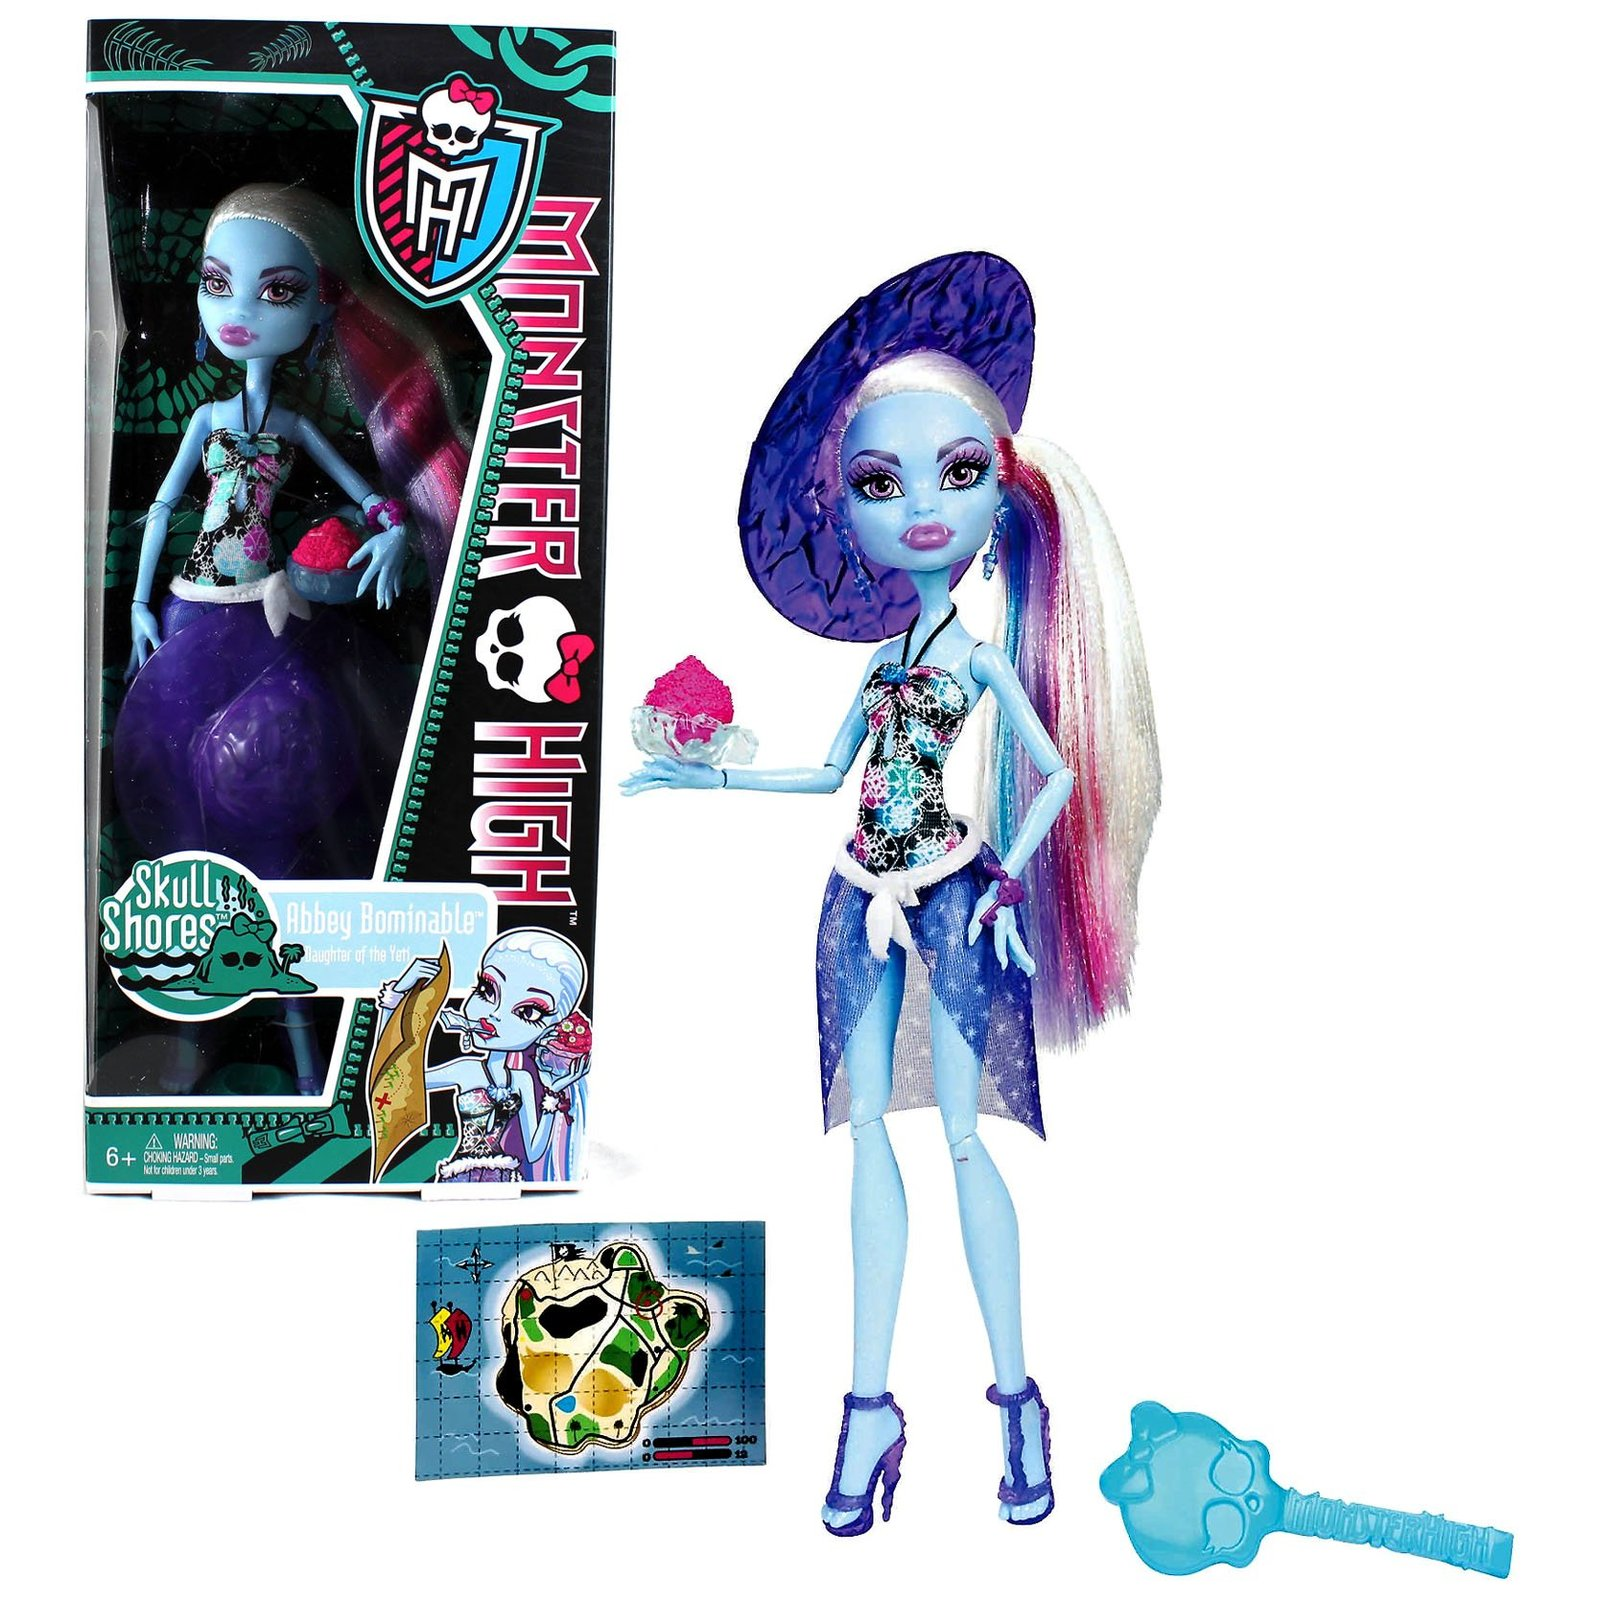 Mattel Year 2011 Monster High Skull Shores Series 10 Inch Doll - Abbey Bominable